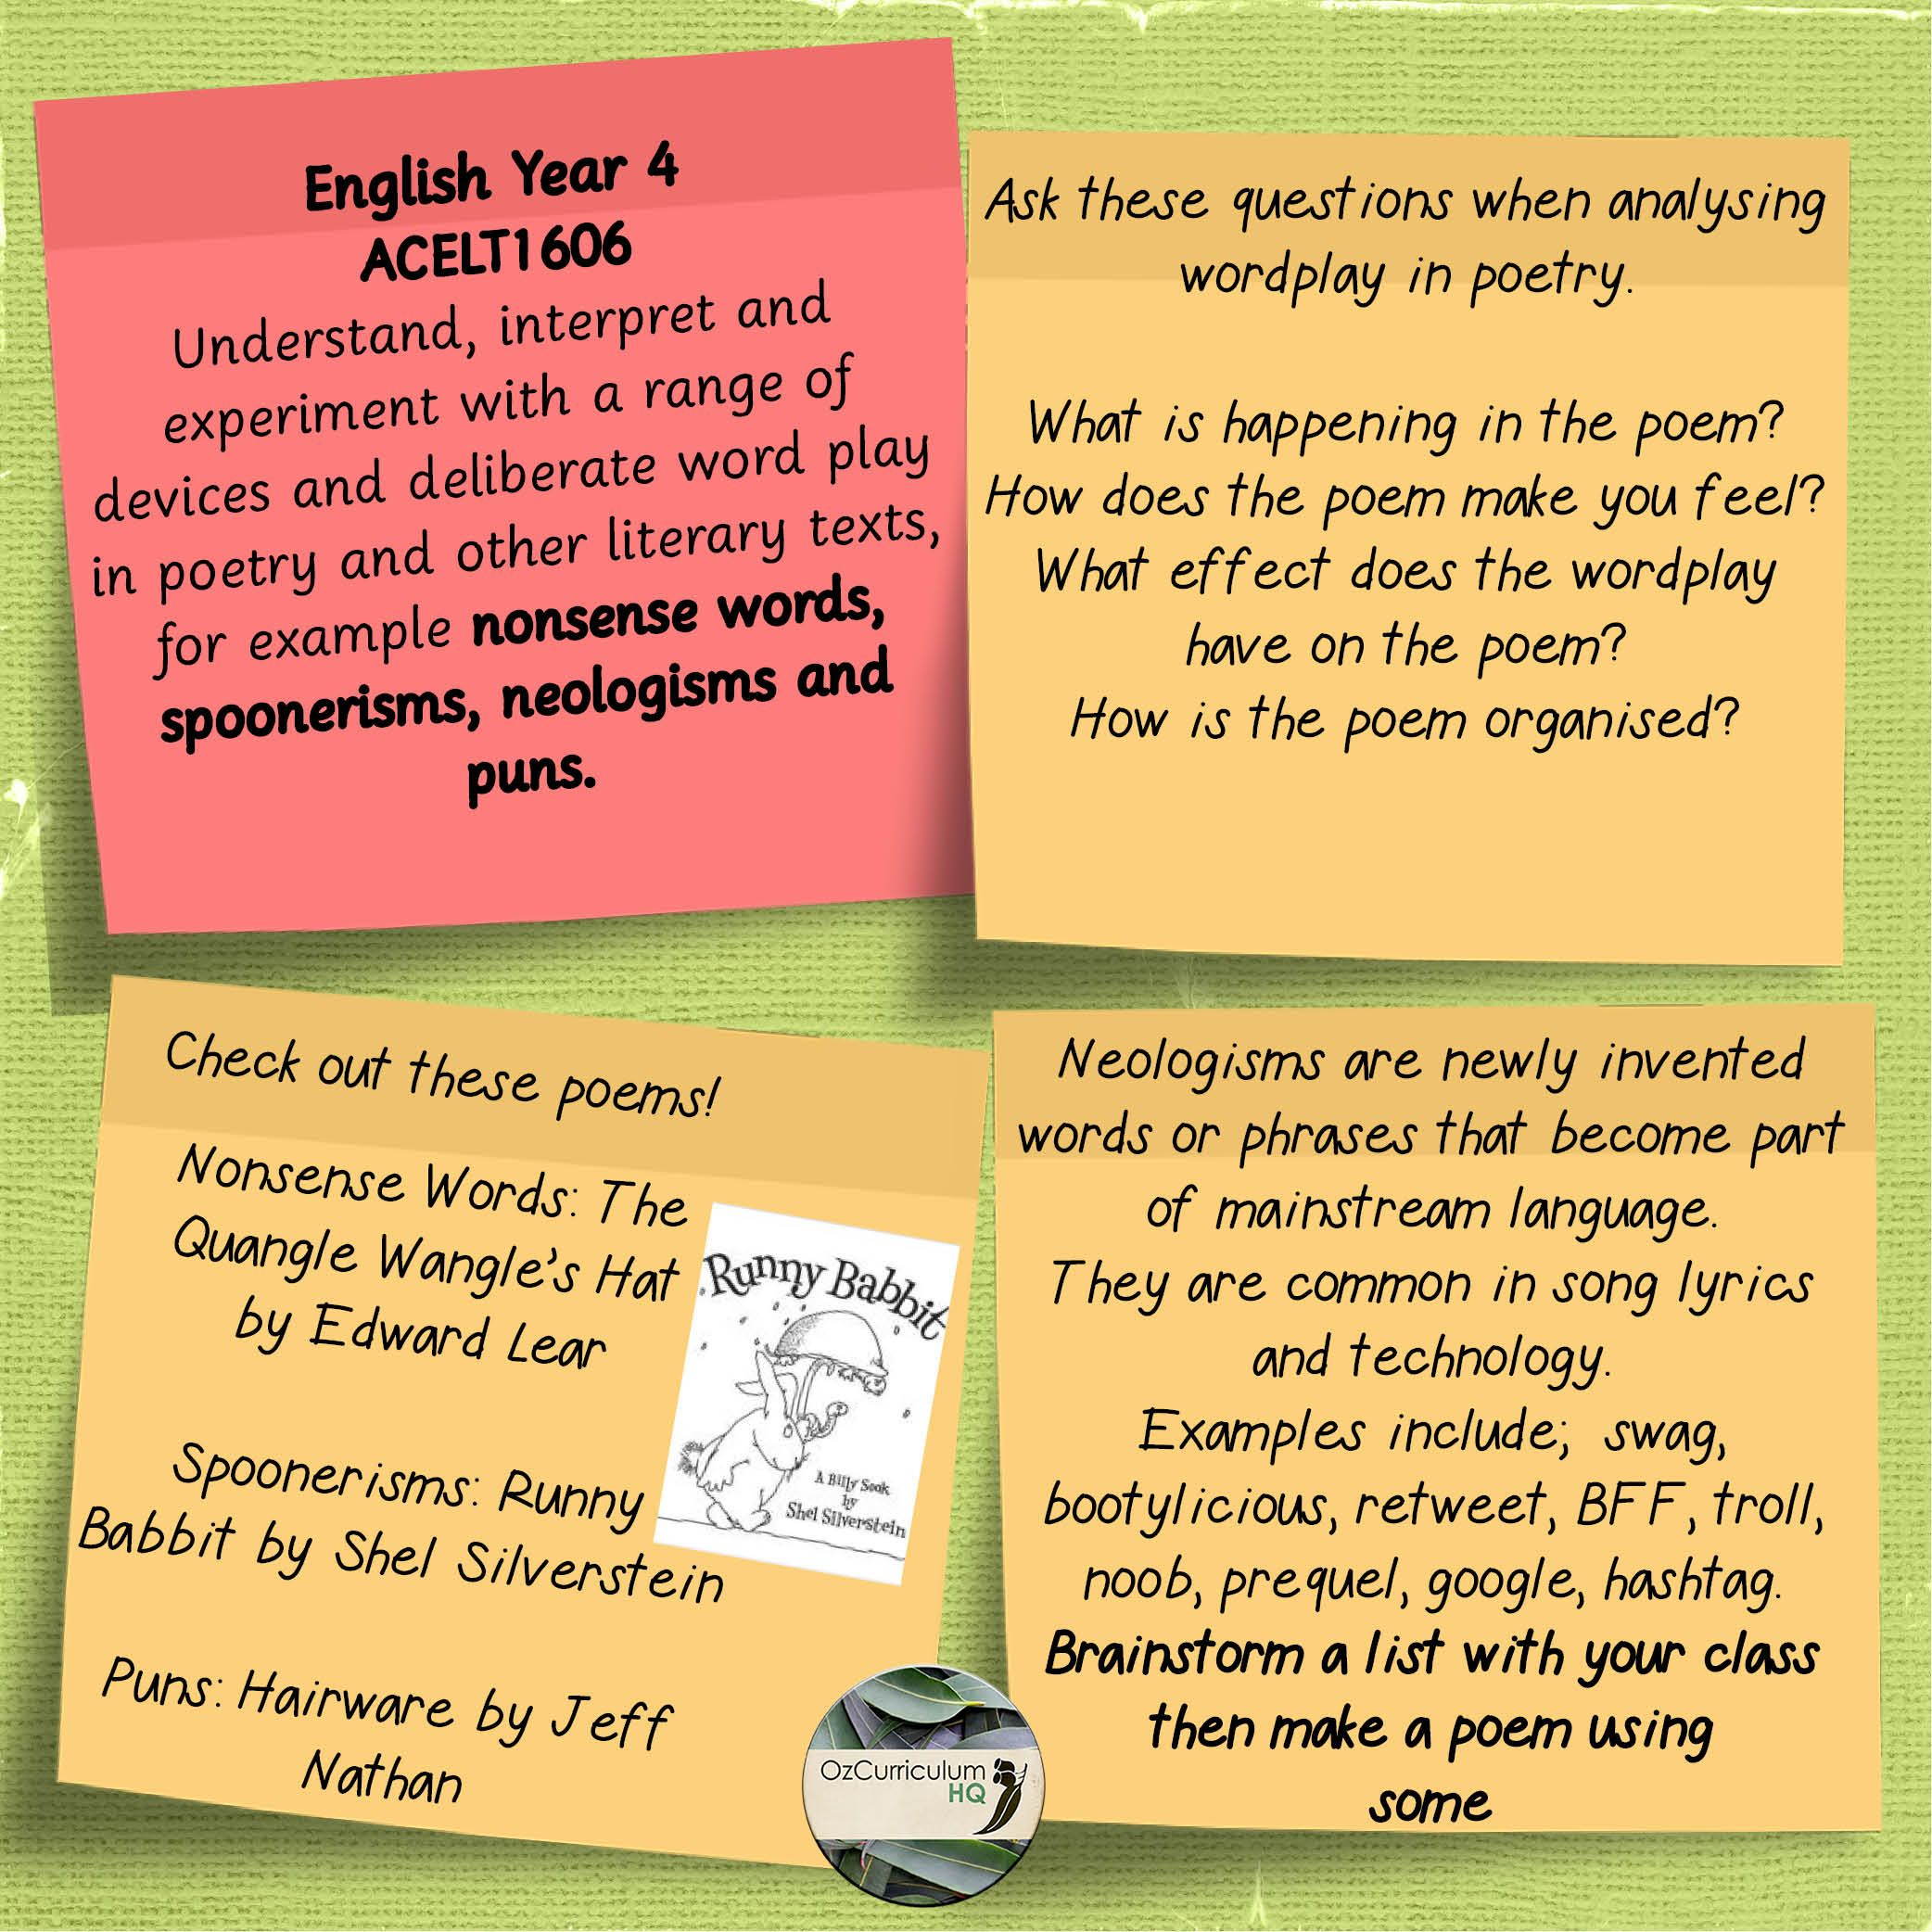 English Year 4 Acelt1606 Nonsense Words Spoonerisms Neologisms And